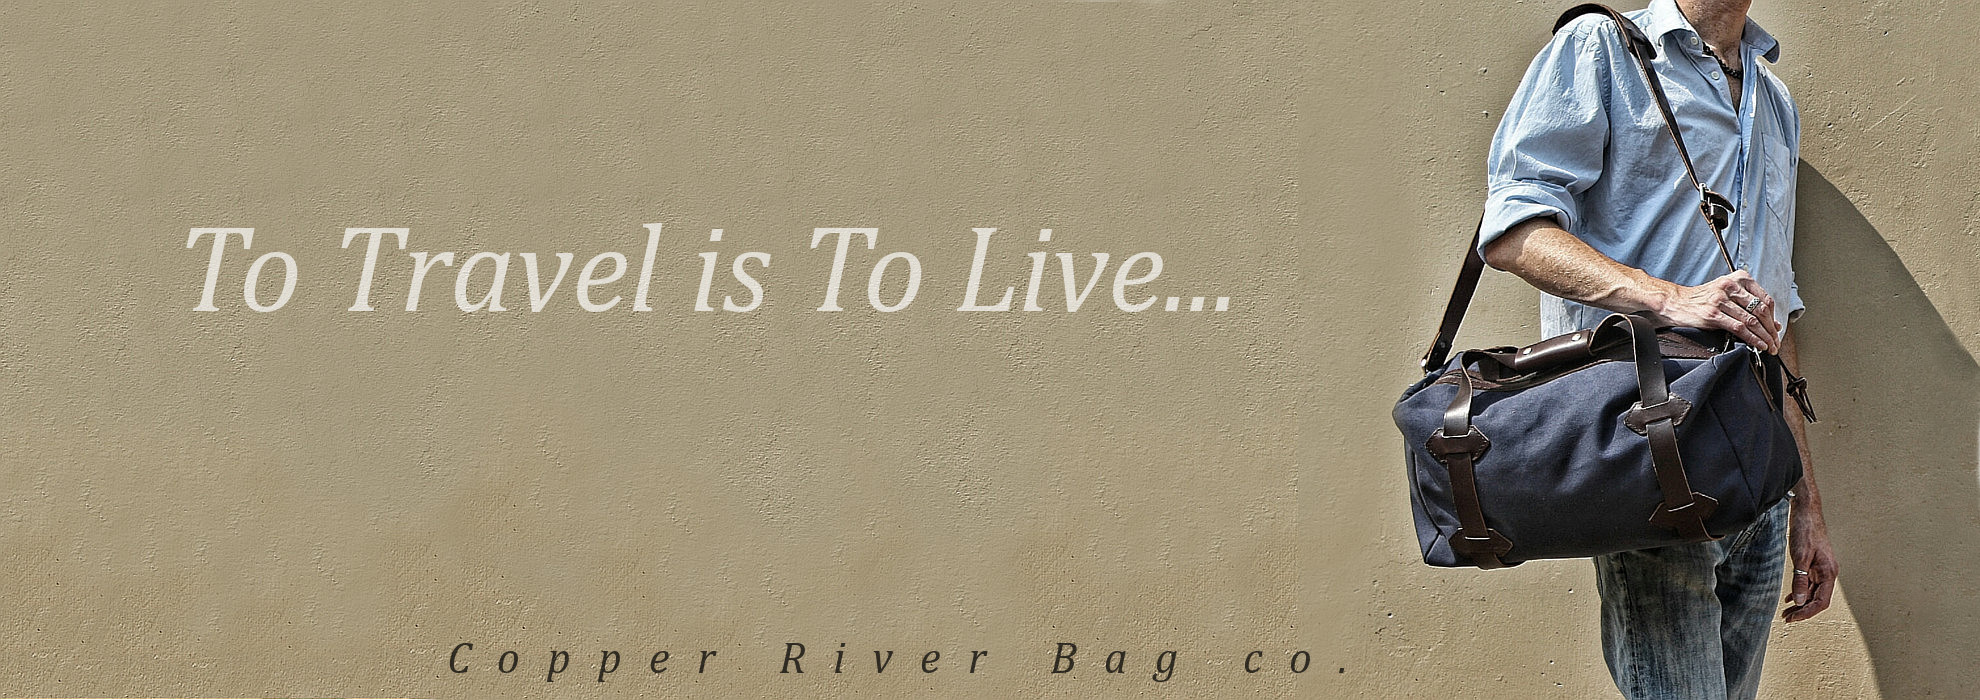 copper-river-bag-co-banner-to-travel-.jpg